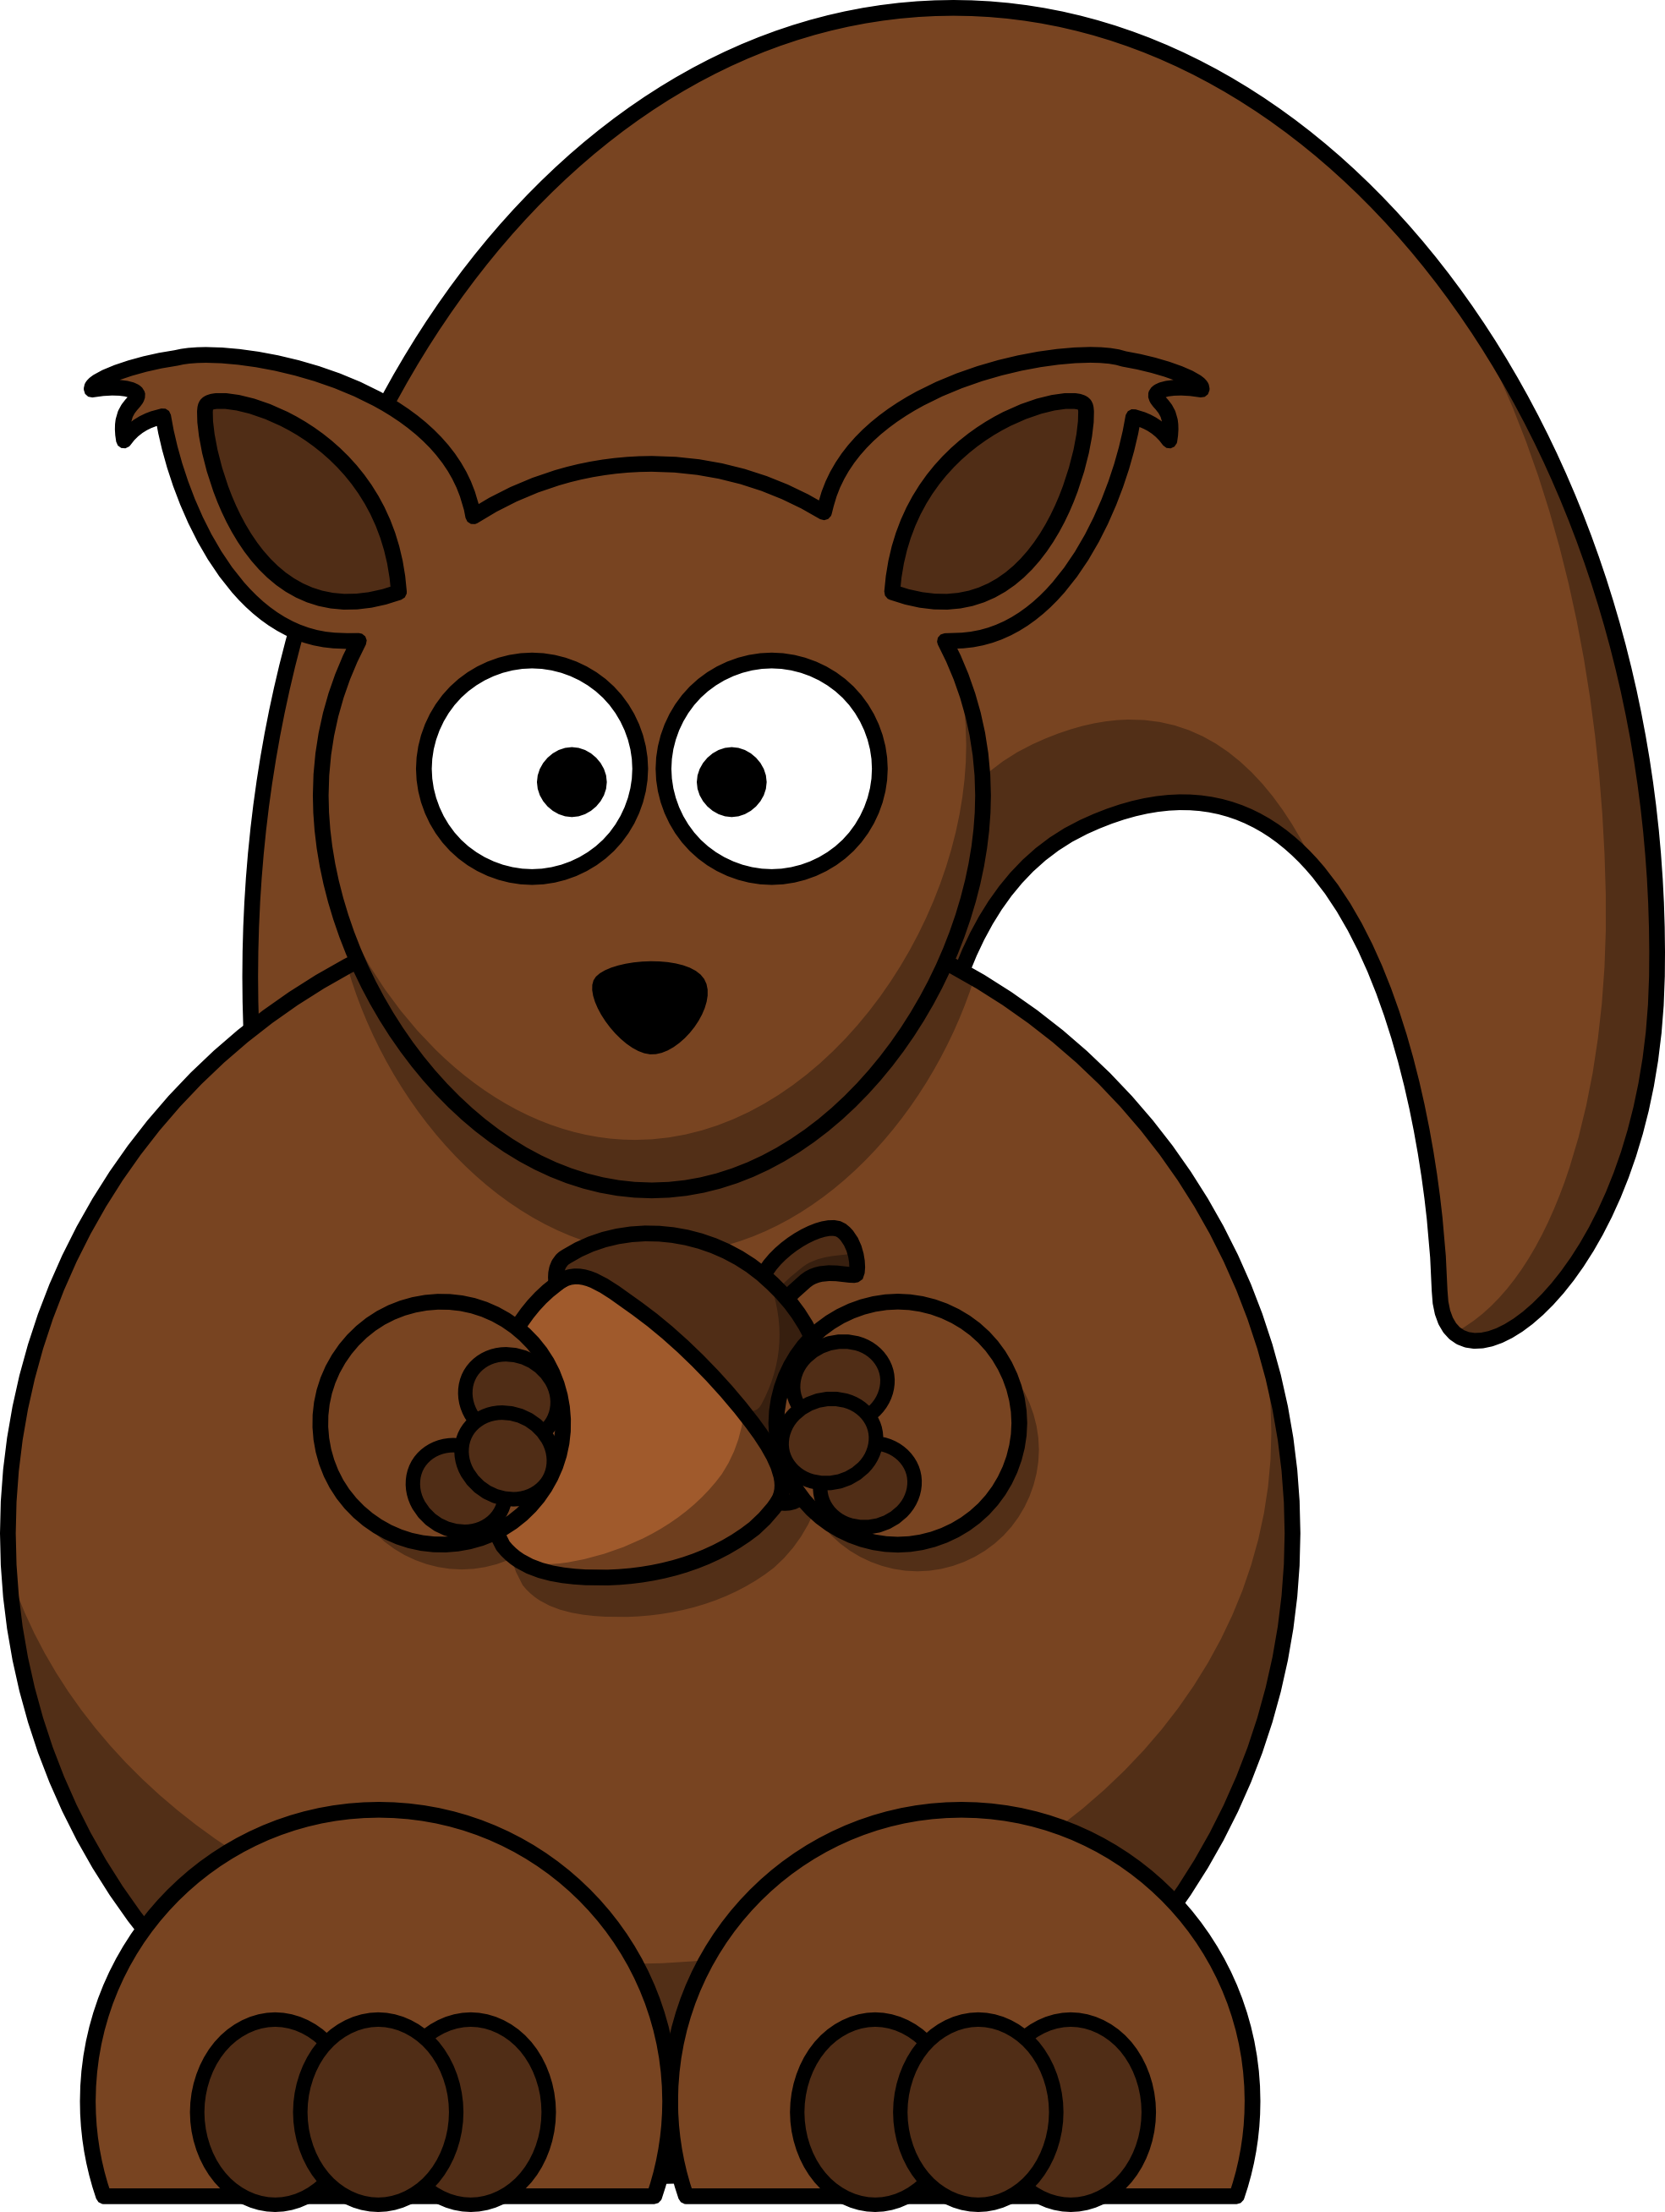 Woodland clipart squirrel. Free animated download clip